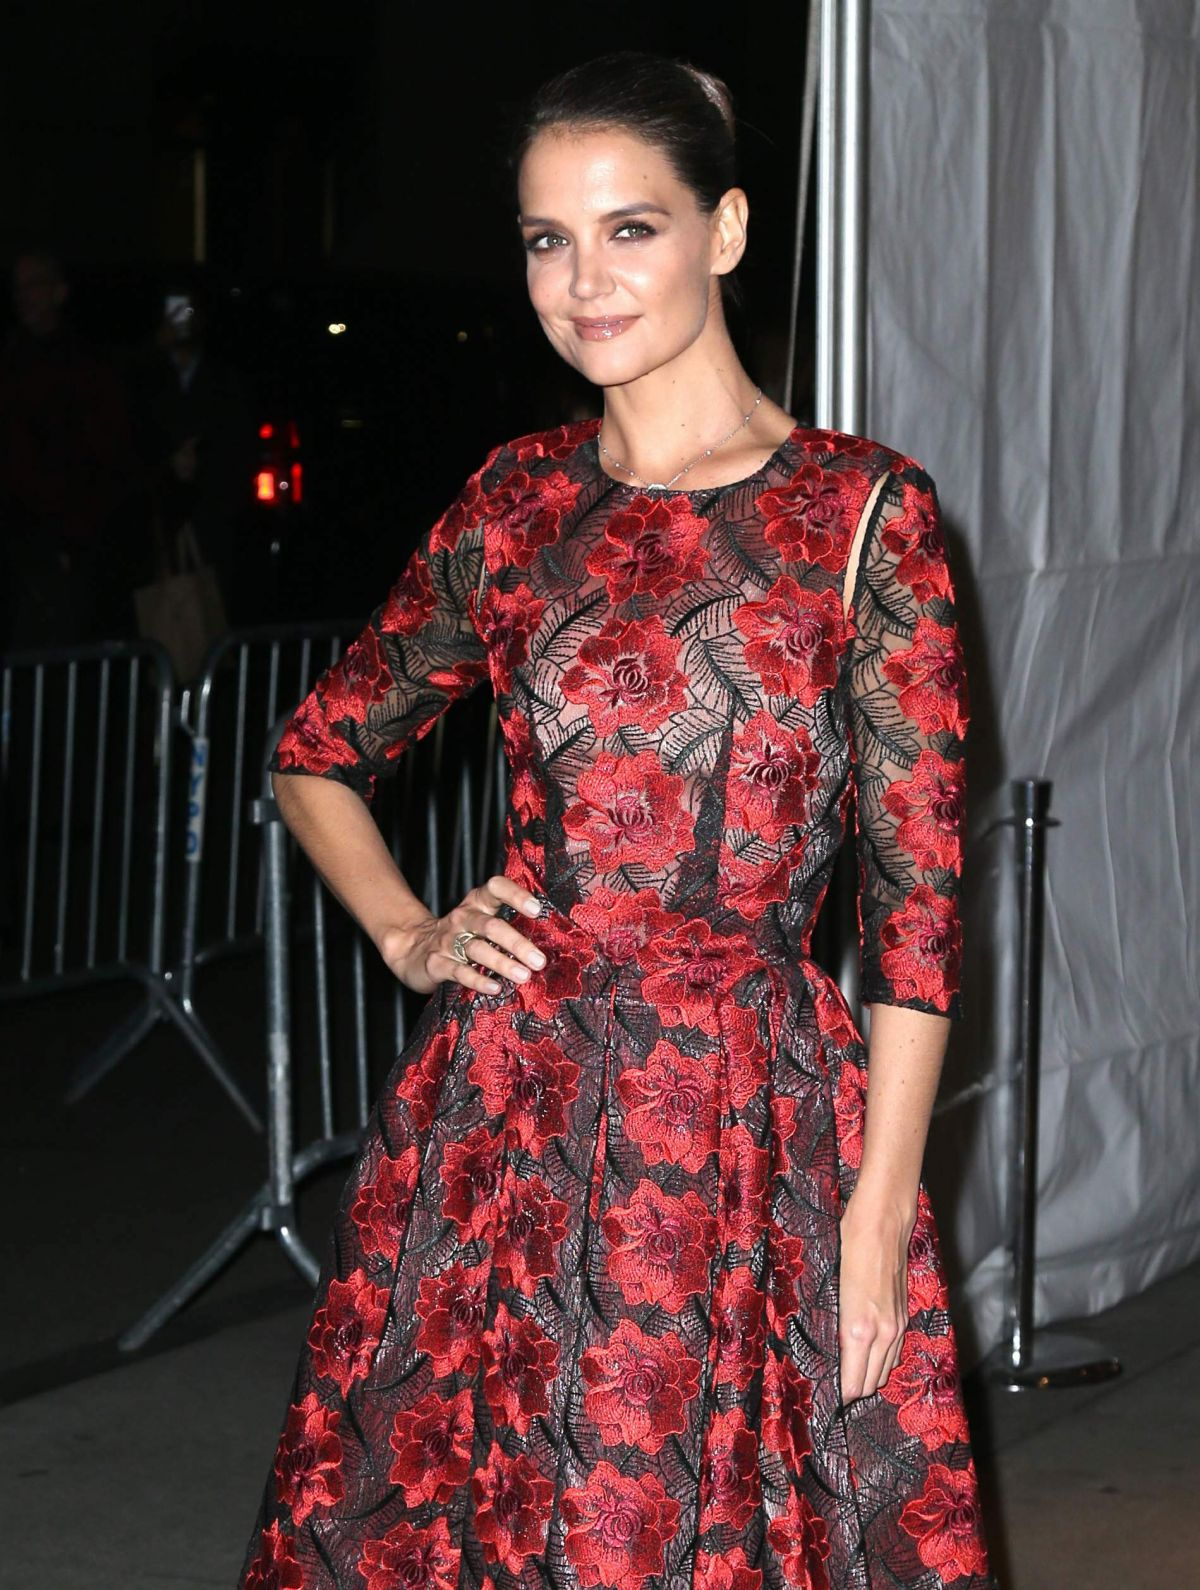 KATIE HOLMES at 2016 IFP Gotham Independent Film Awards in New York 11/28/2016